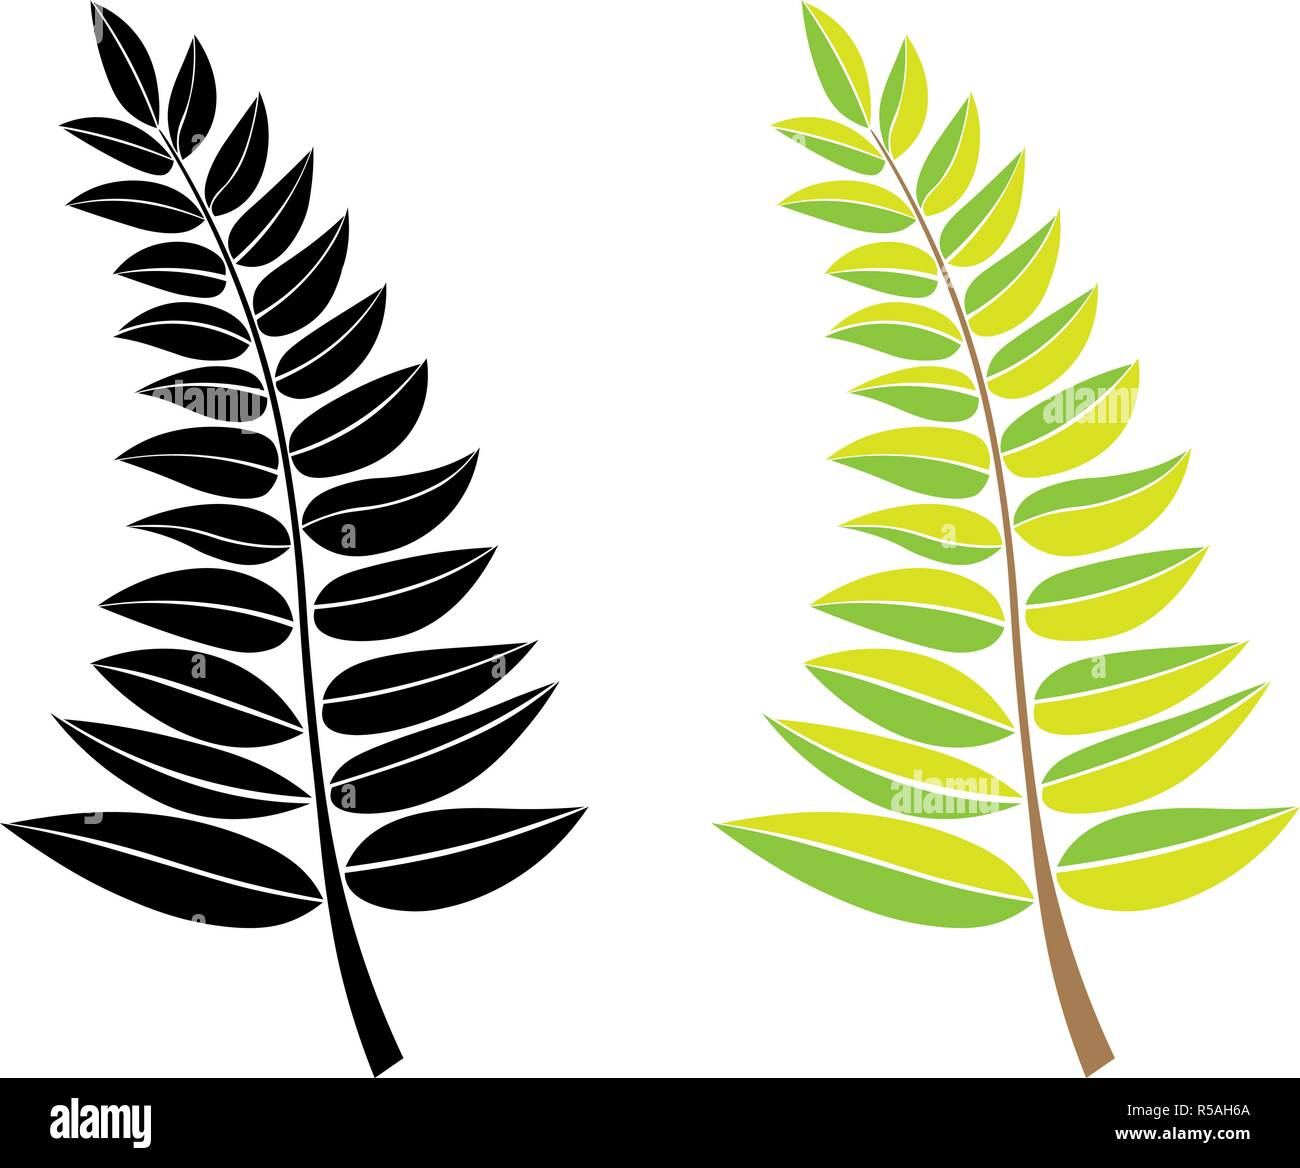 Vector Black And Green Silhouette Of A Branch With Leaves Design